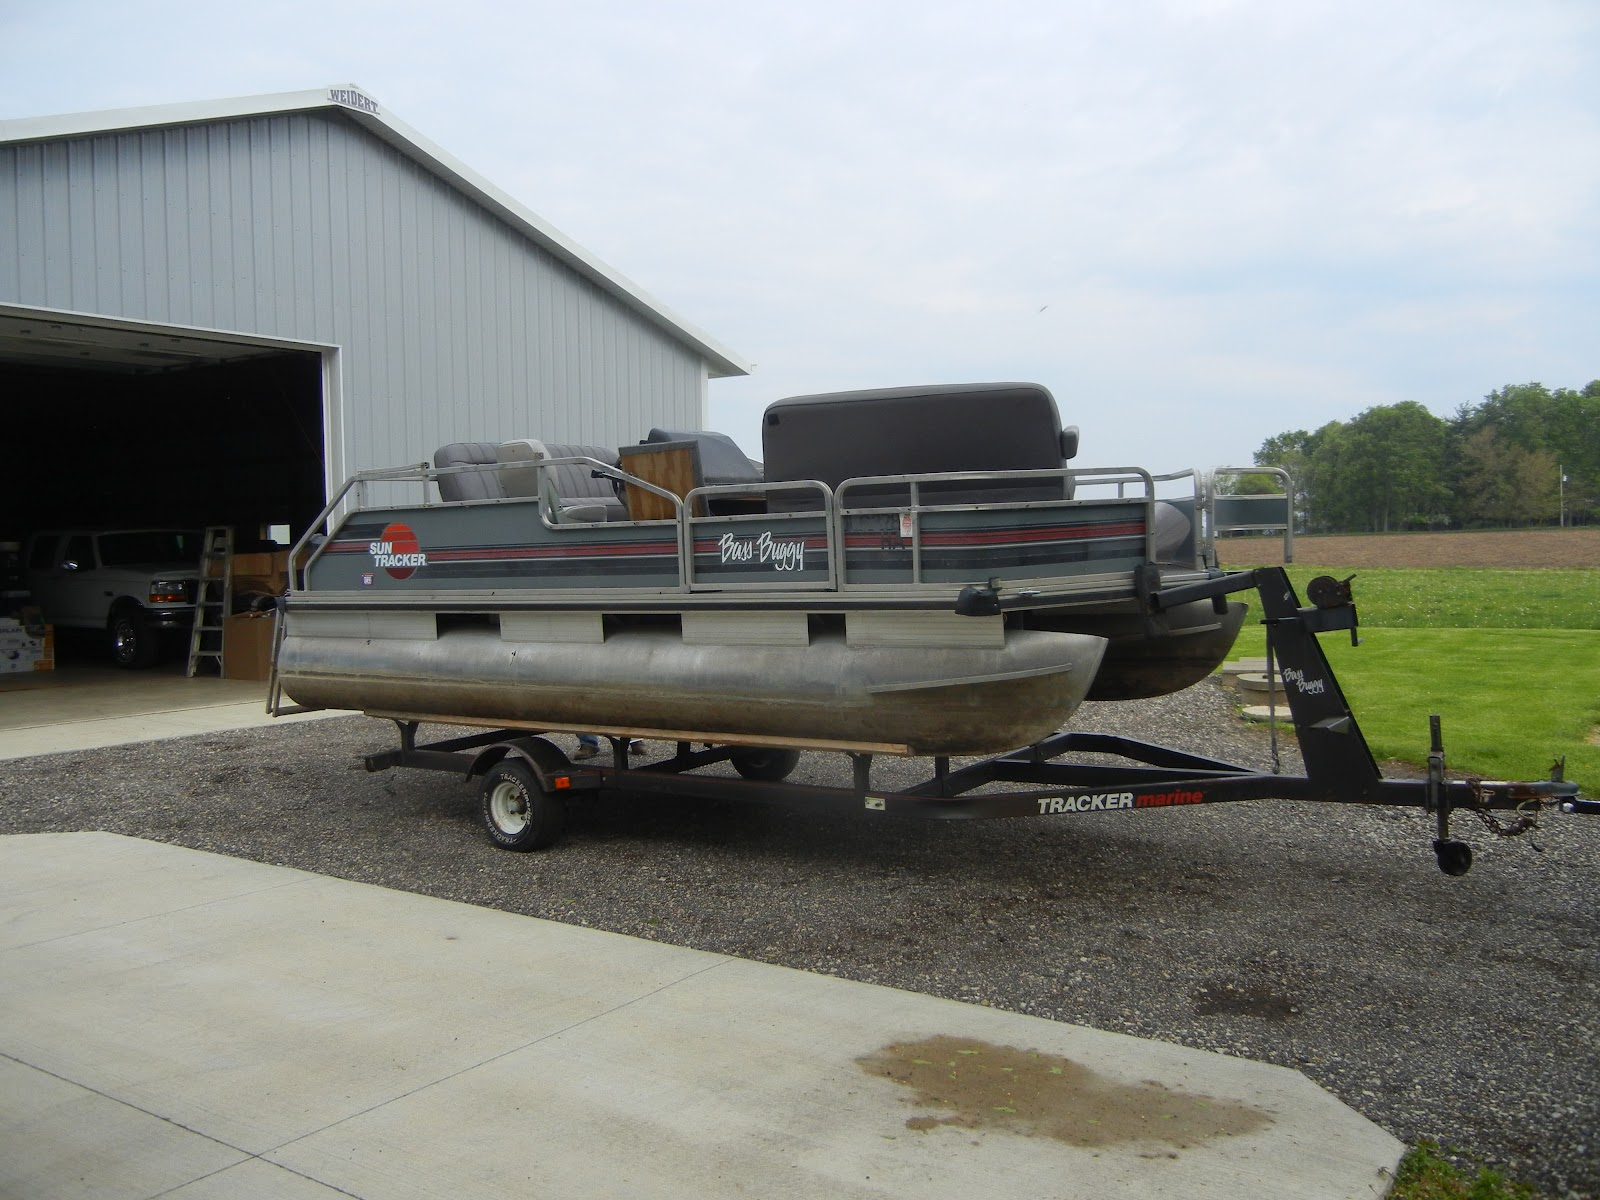 medium resolution of clint and i bought a used pontoon boat this week a bit of a fixer upper she floats and she runs but she needs a little elbow grease and rewiring at the